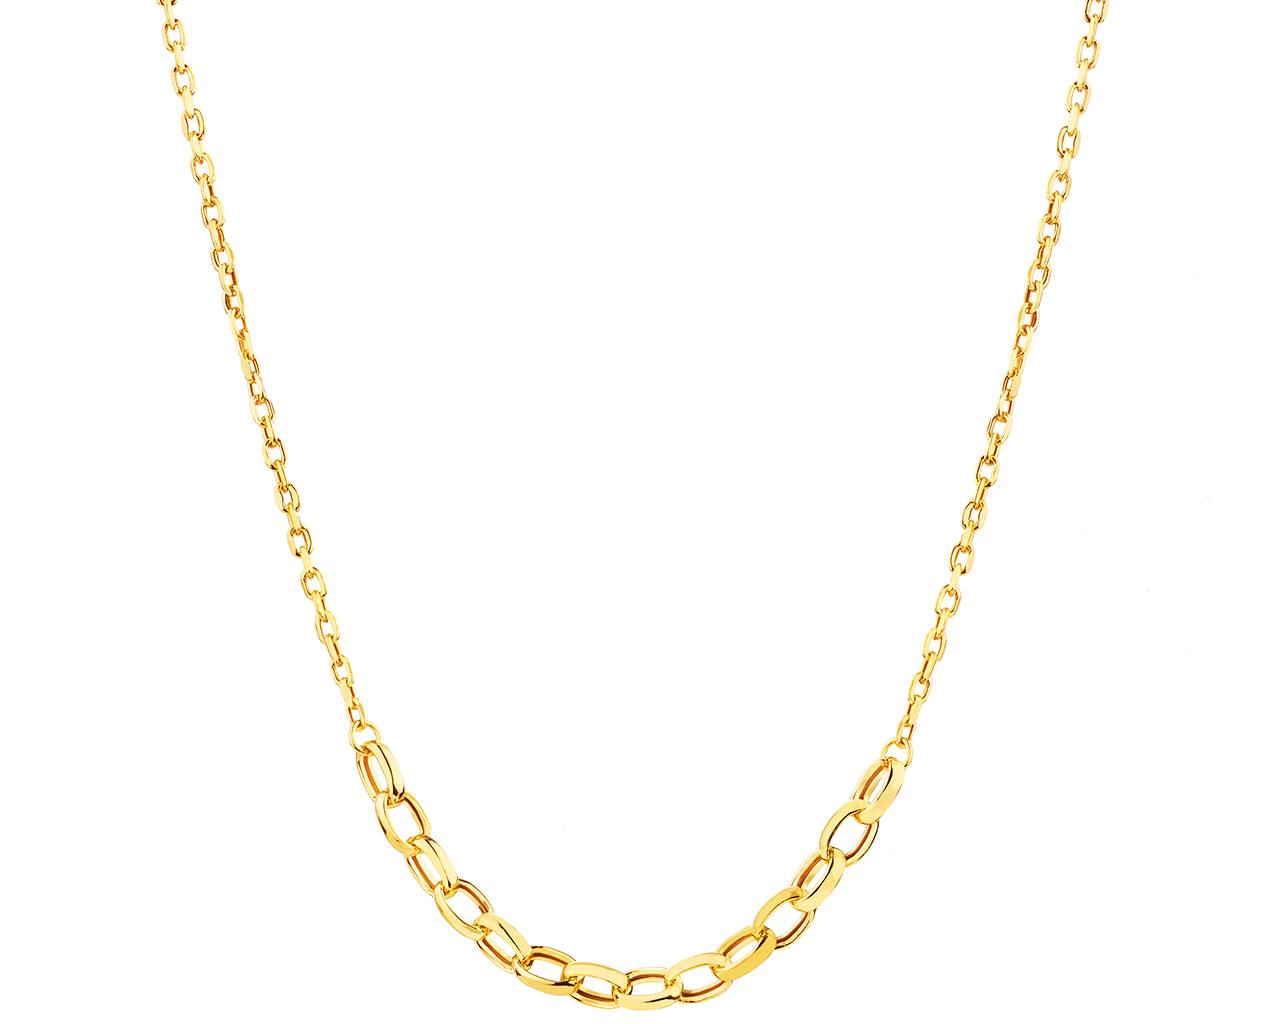 Yellow Gold Necklace with Cubic Zirconia